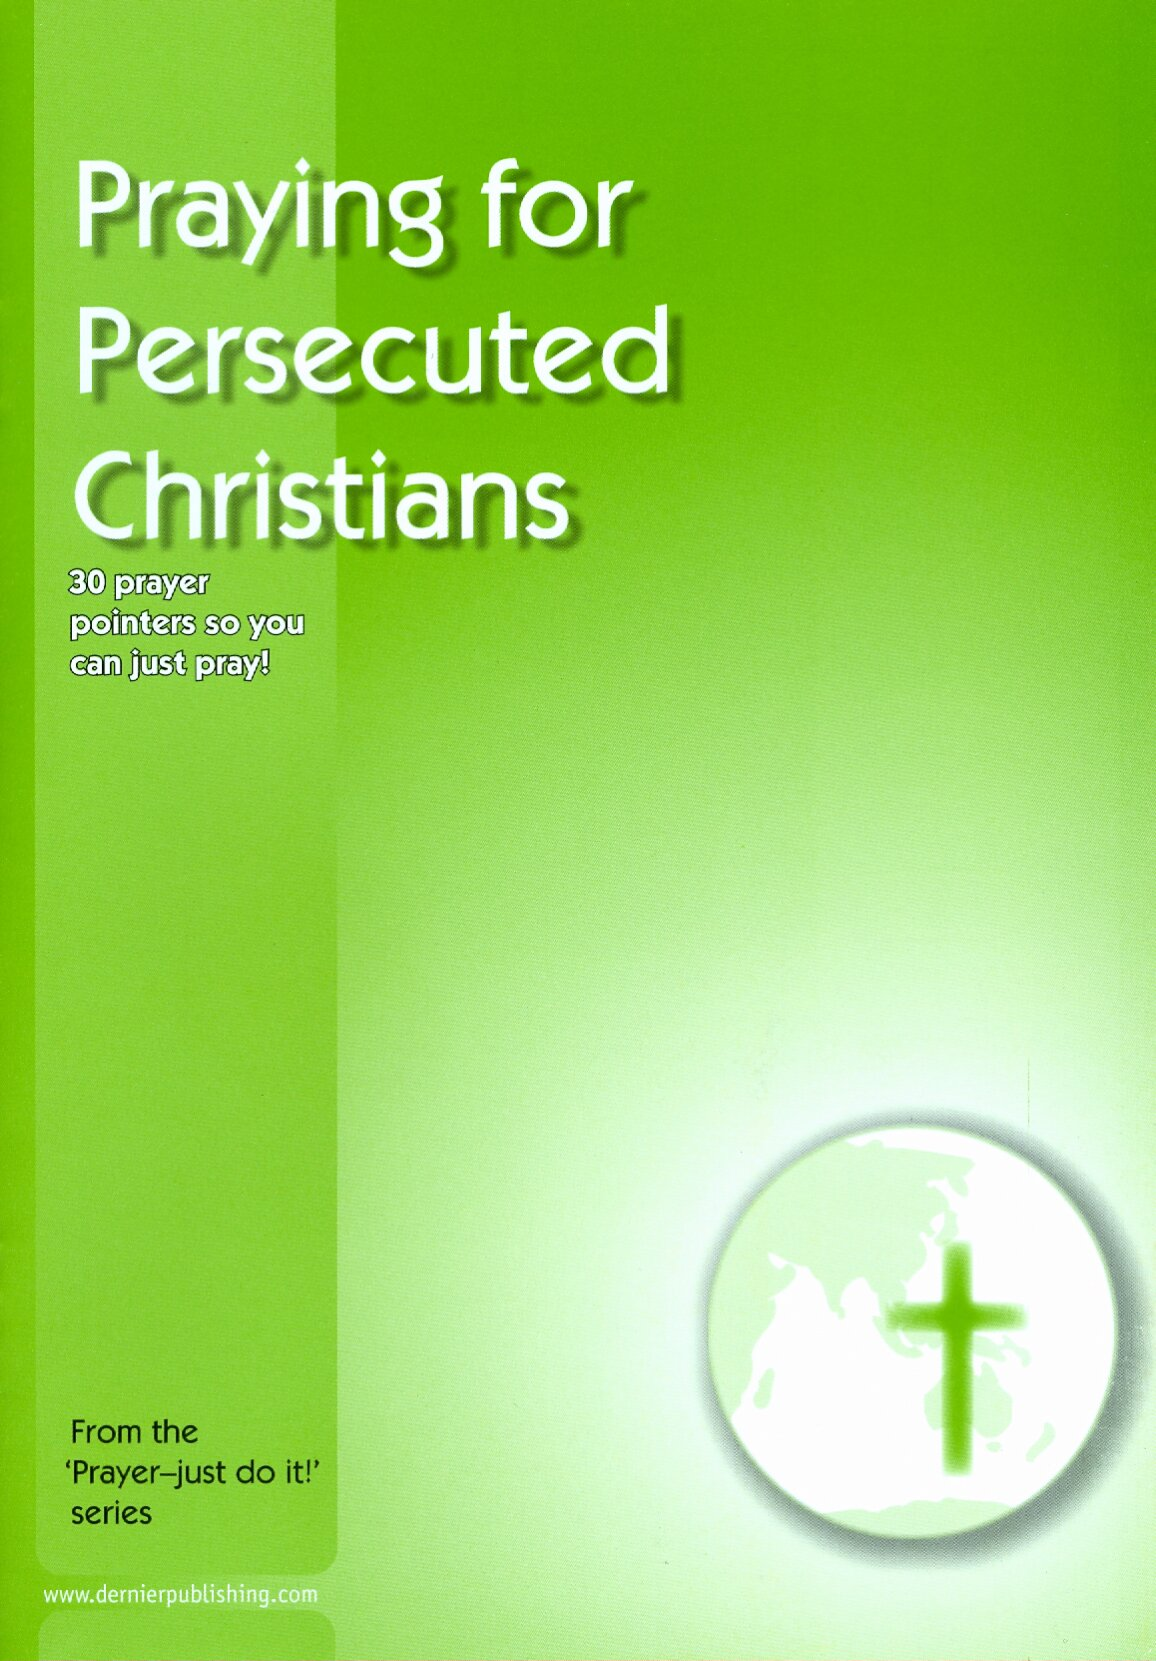 Praying for Persecuted Christians